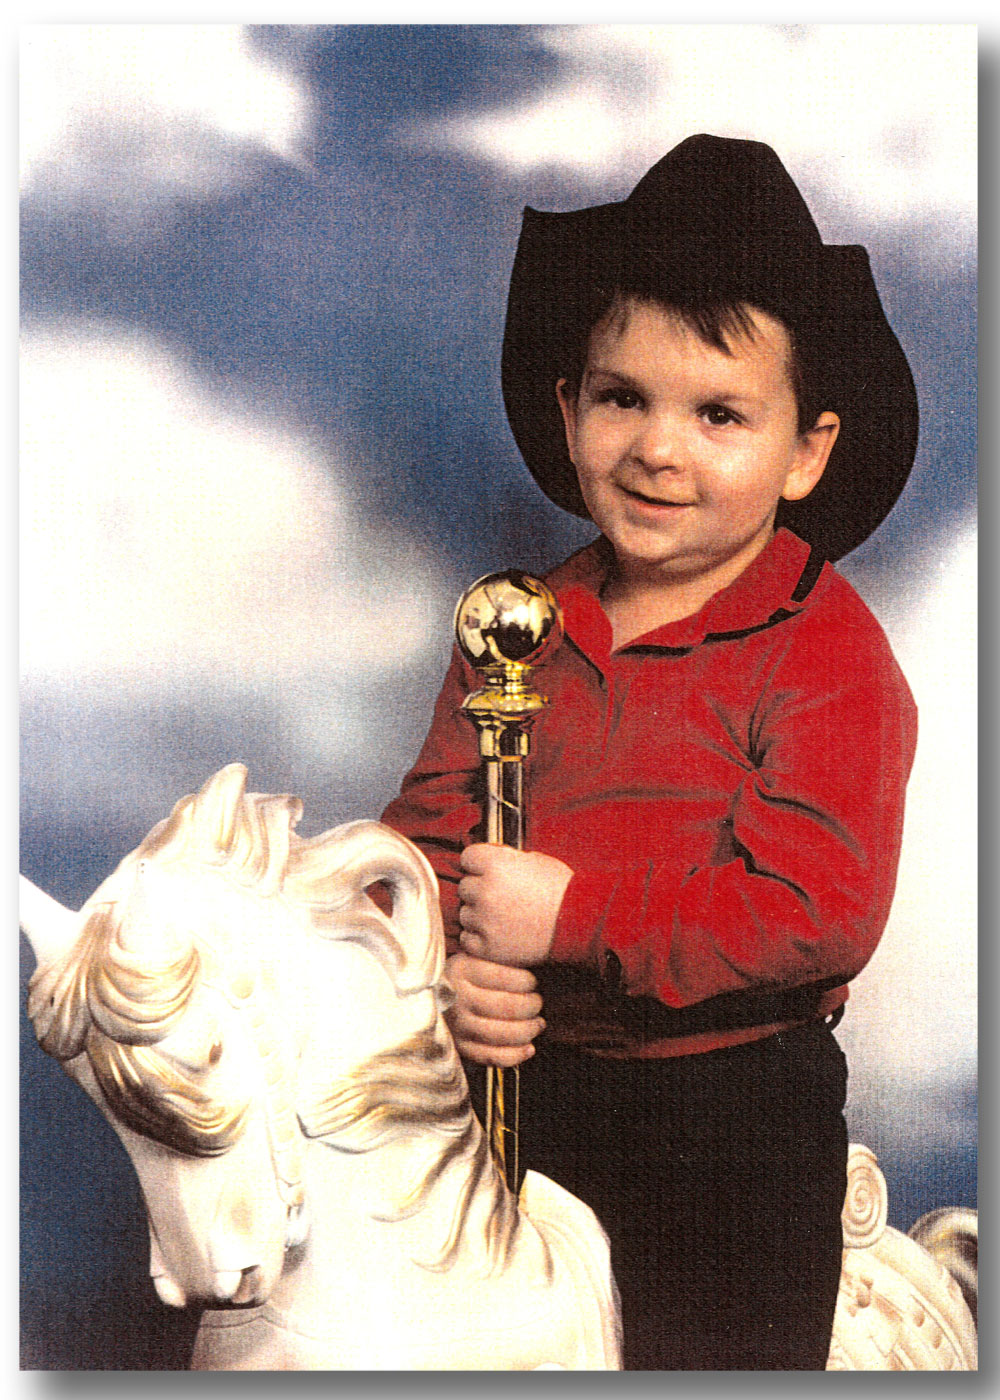 Photo of Brock Walquist riding a horse